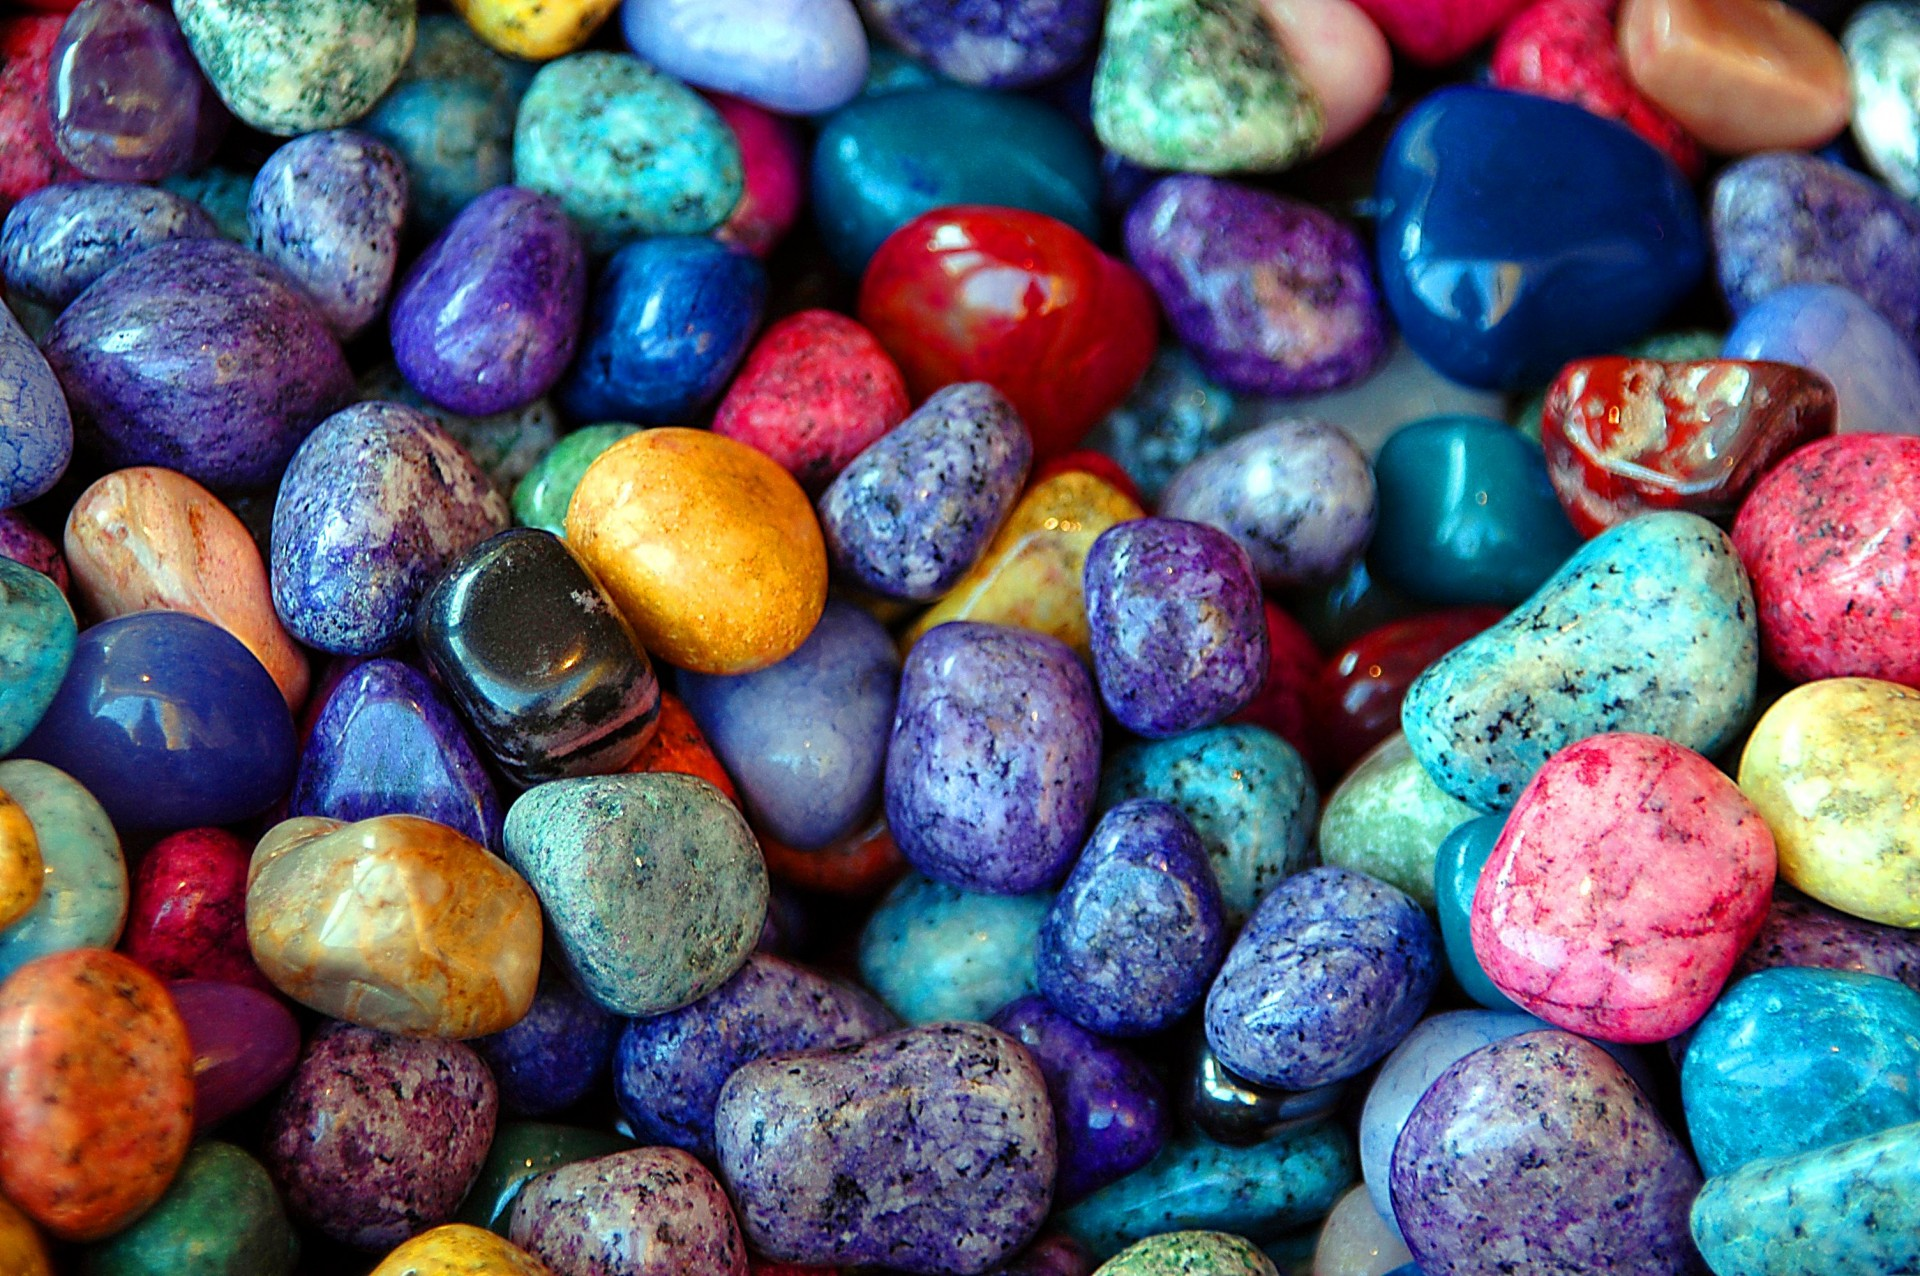 3d Fish Wallpaper Hd Colorful Stones Free Stock Photo Public Domain Pictures